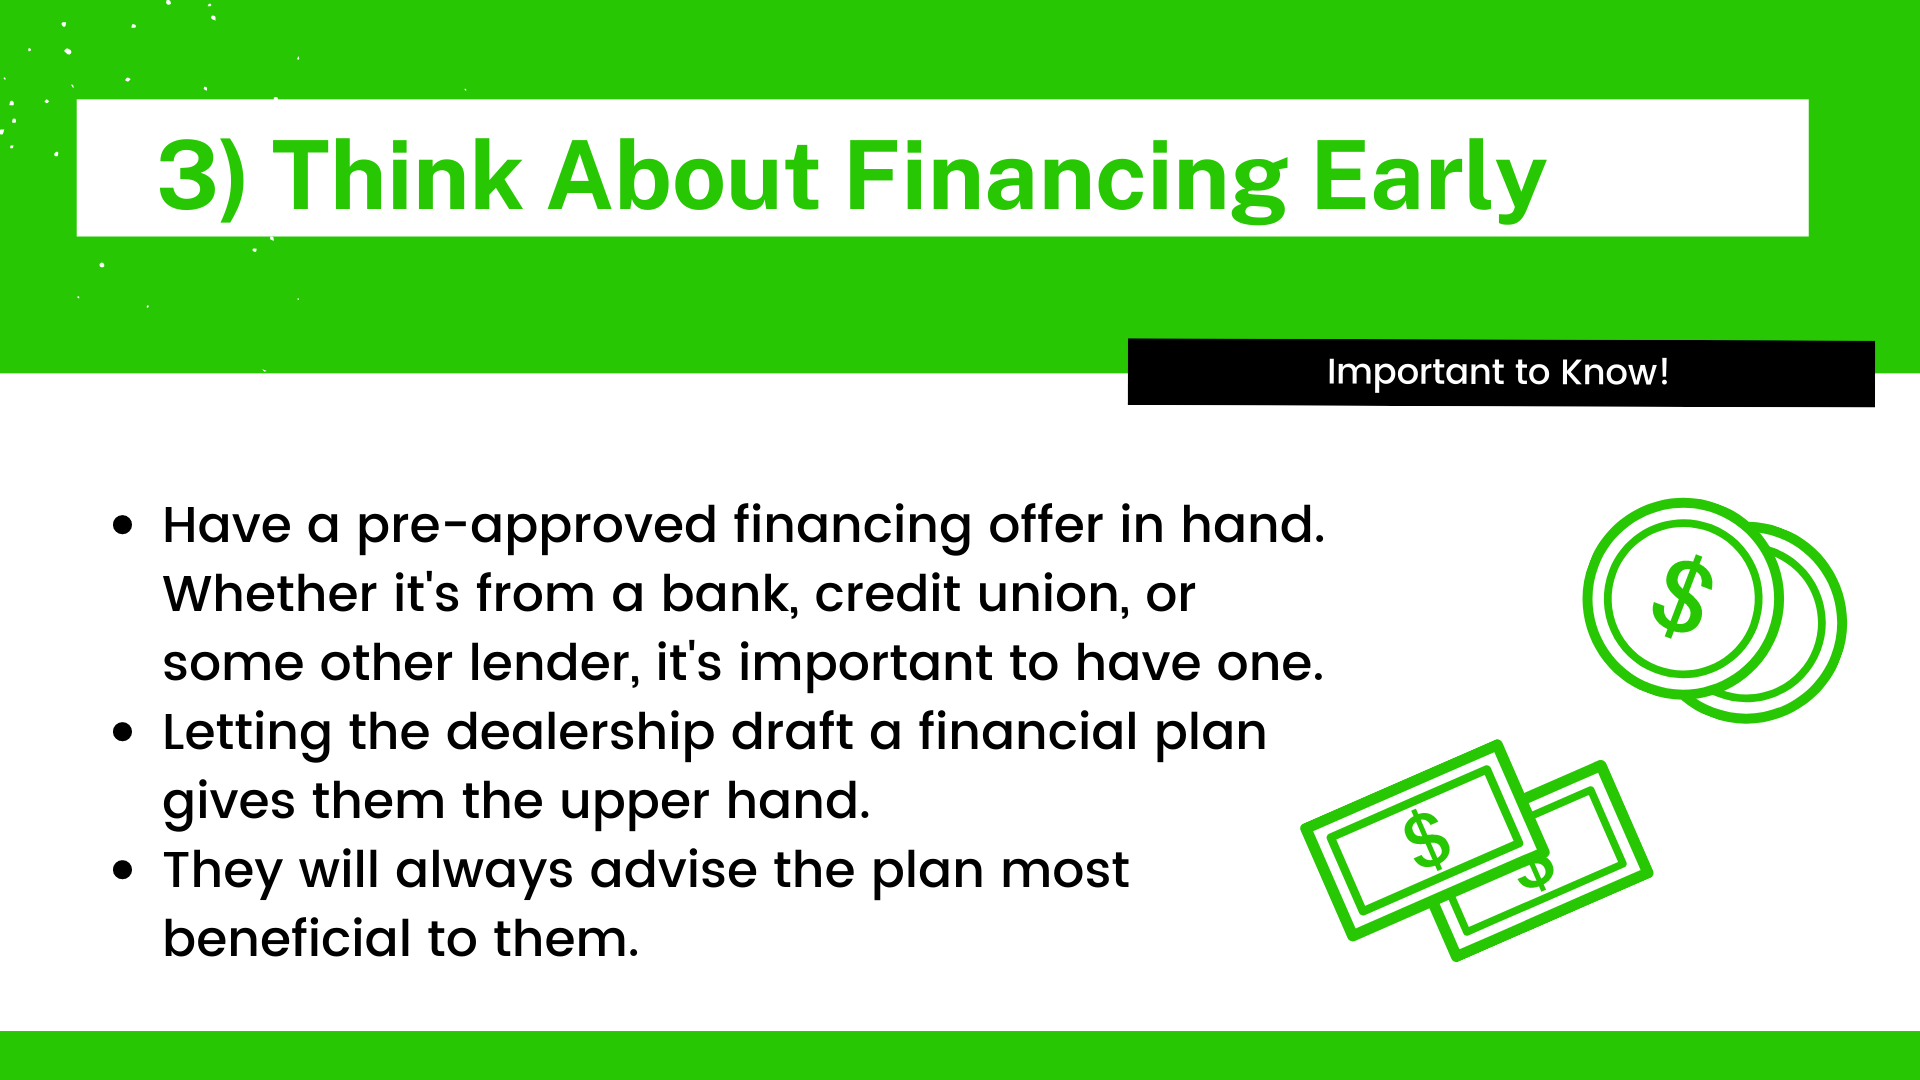 Have a pre-approved financing offer in hand. Whether it's from a bank, credit union, or some other lender, it's important to have one. Letting the dealership draft a financial plan gives them the upper hand. They will always advise the plan most beneficial to them.